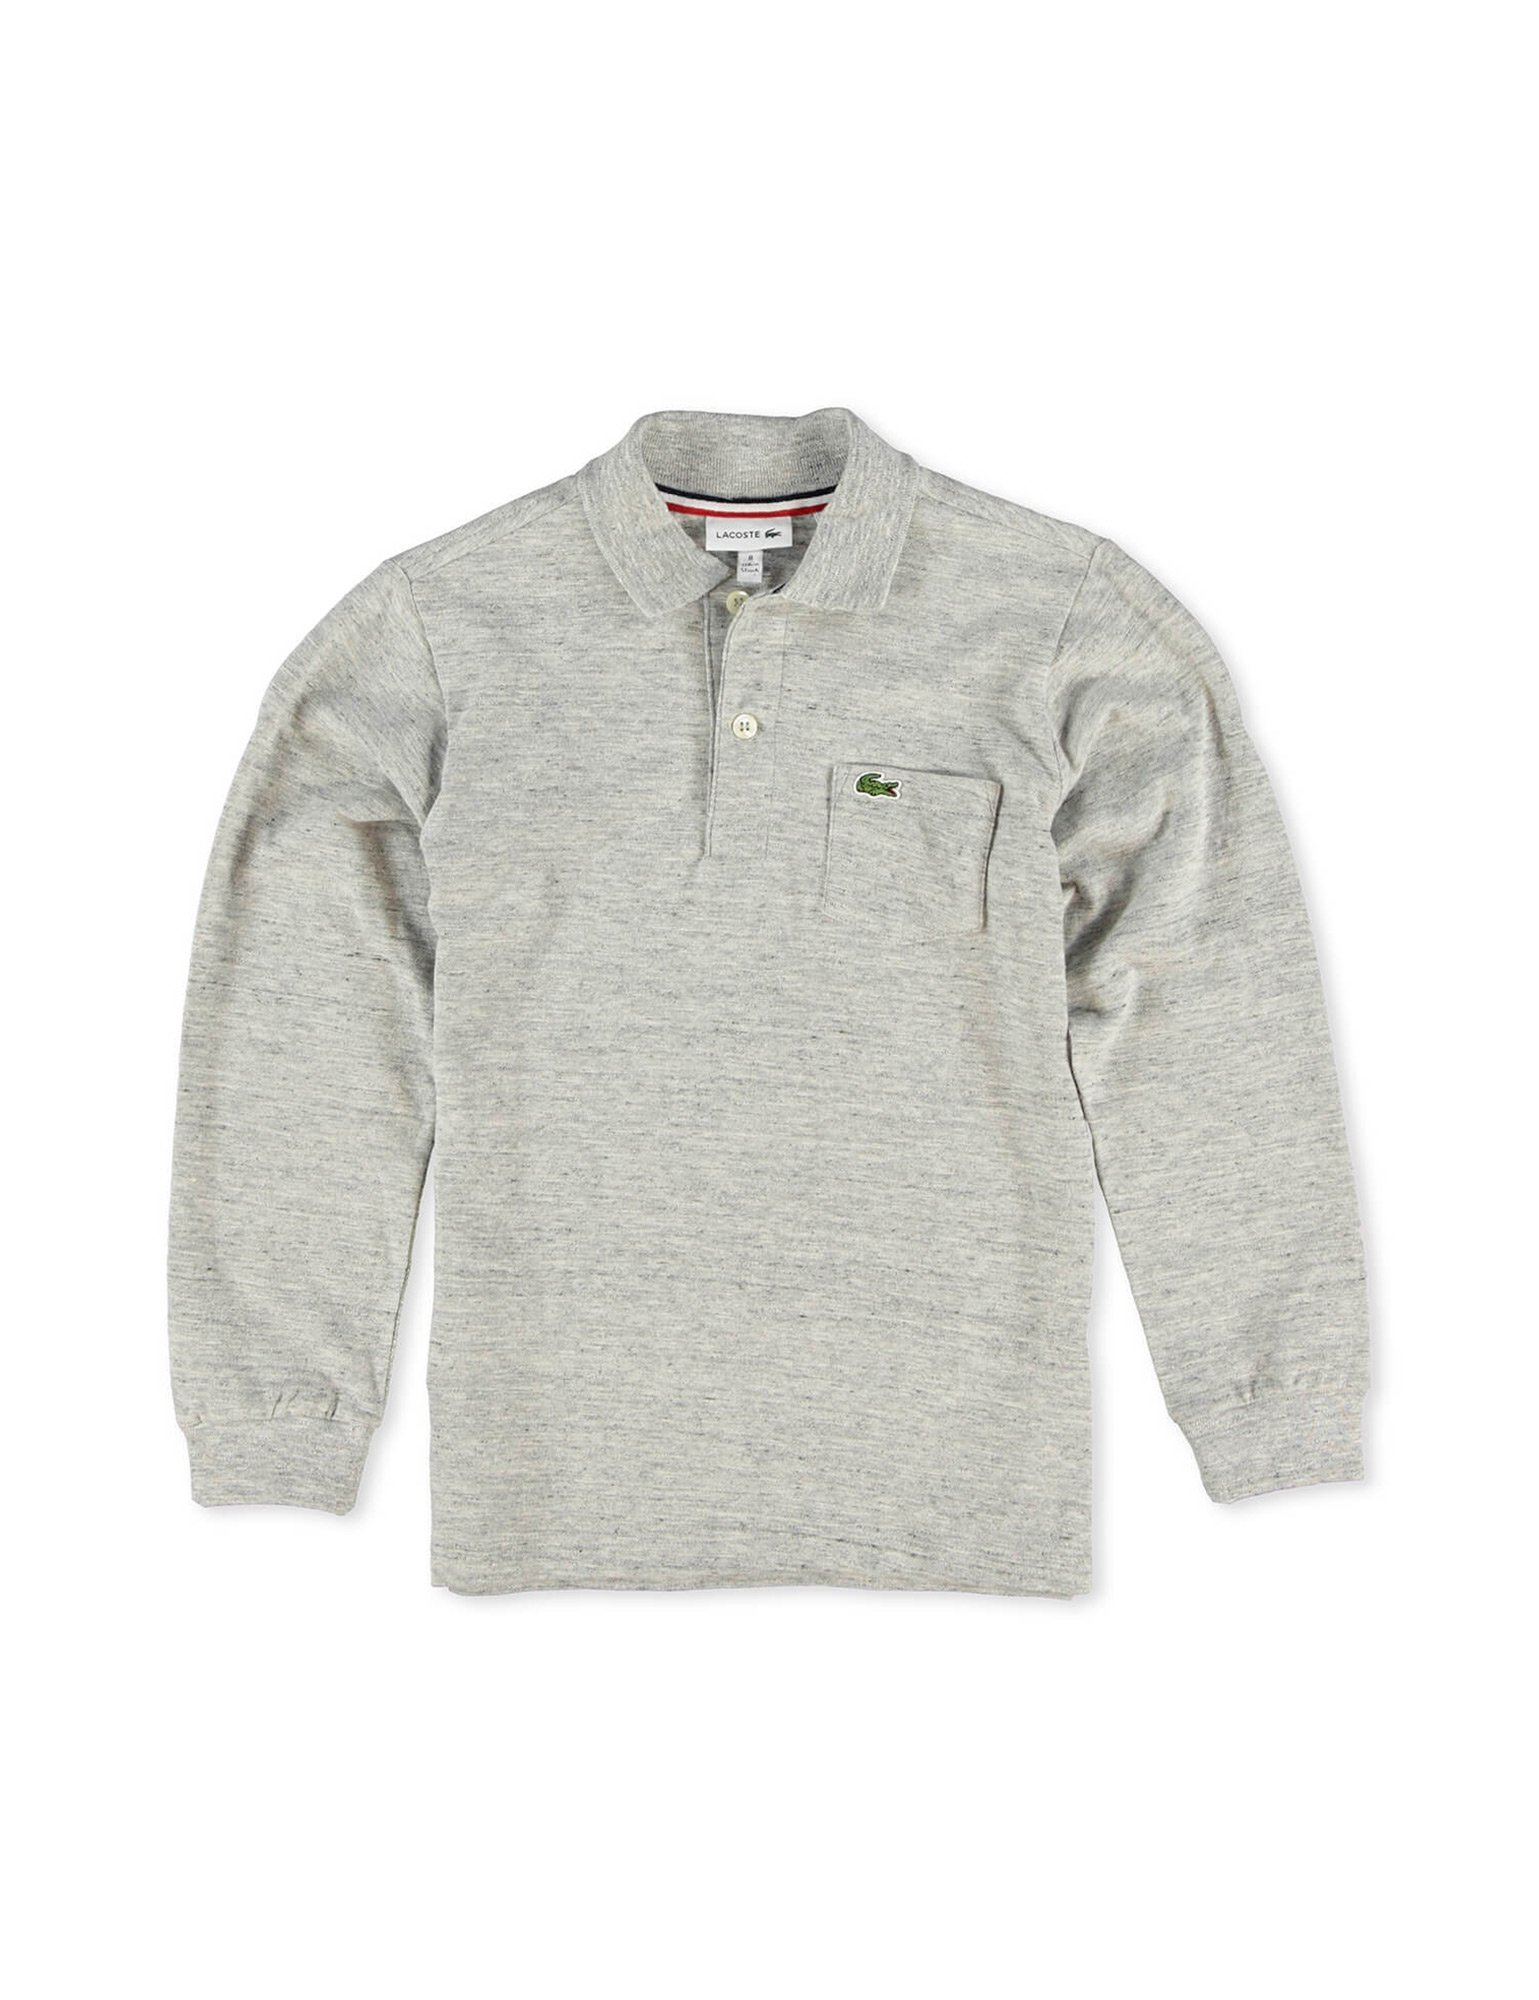 Lacoste Boy's Grey Cotton Long Sleeve Polo in Size 10 Years (140 cm) Grey by Lacoste